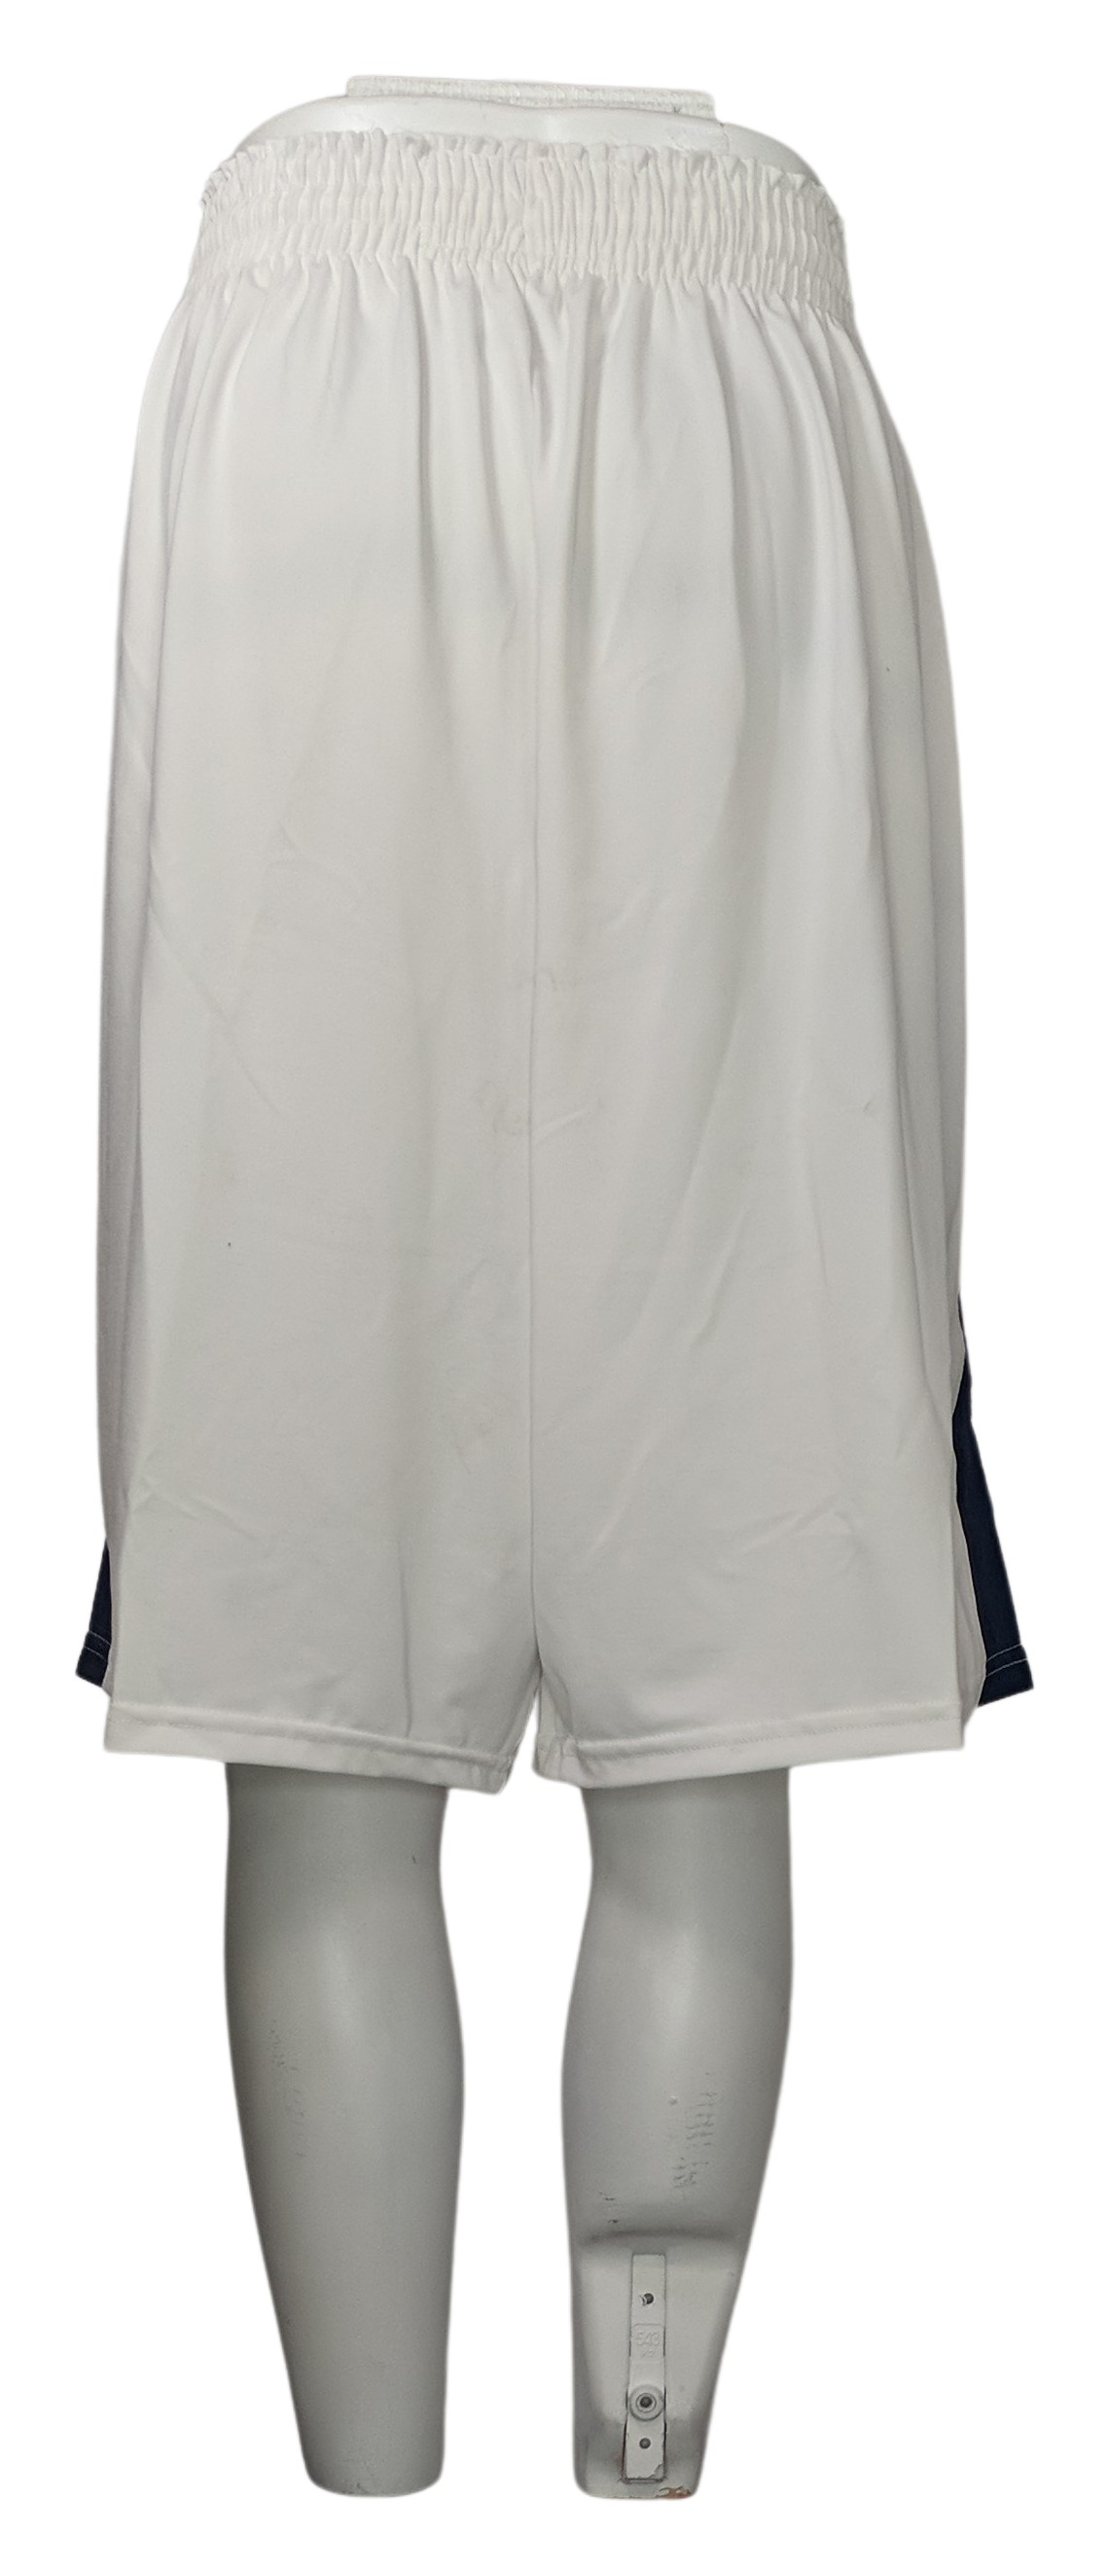 d03eac0fe37 Team Holloway Plus Size Shorts 2XL (XXL) Drawstring Waist Color Blocked  White